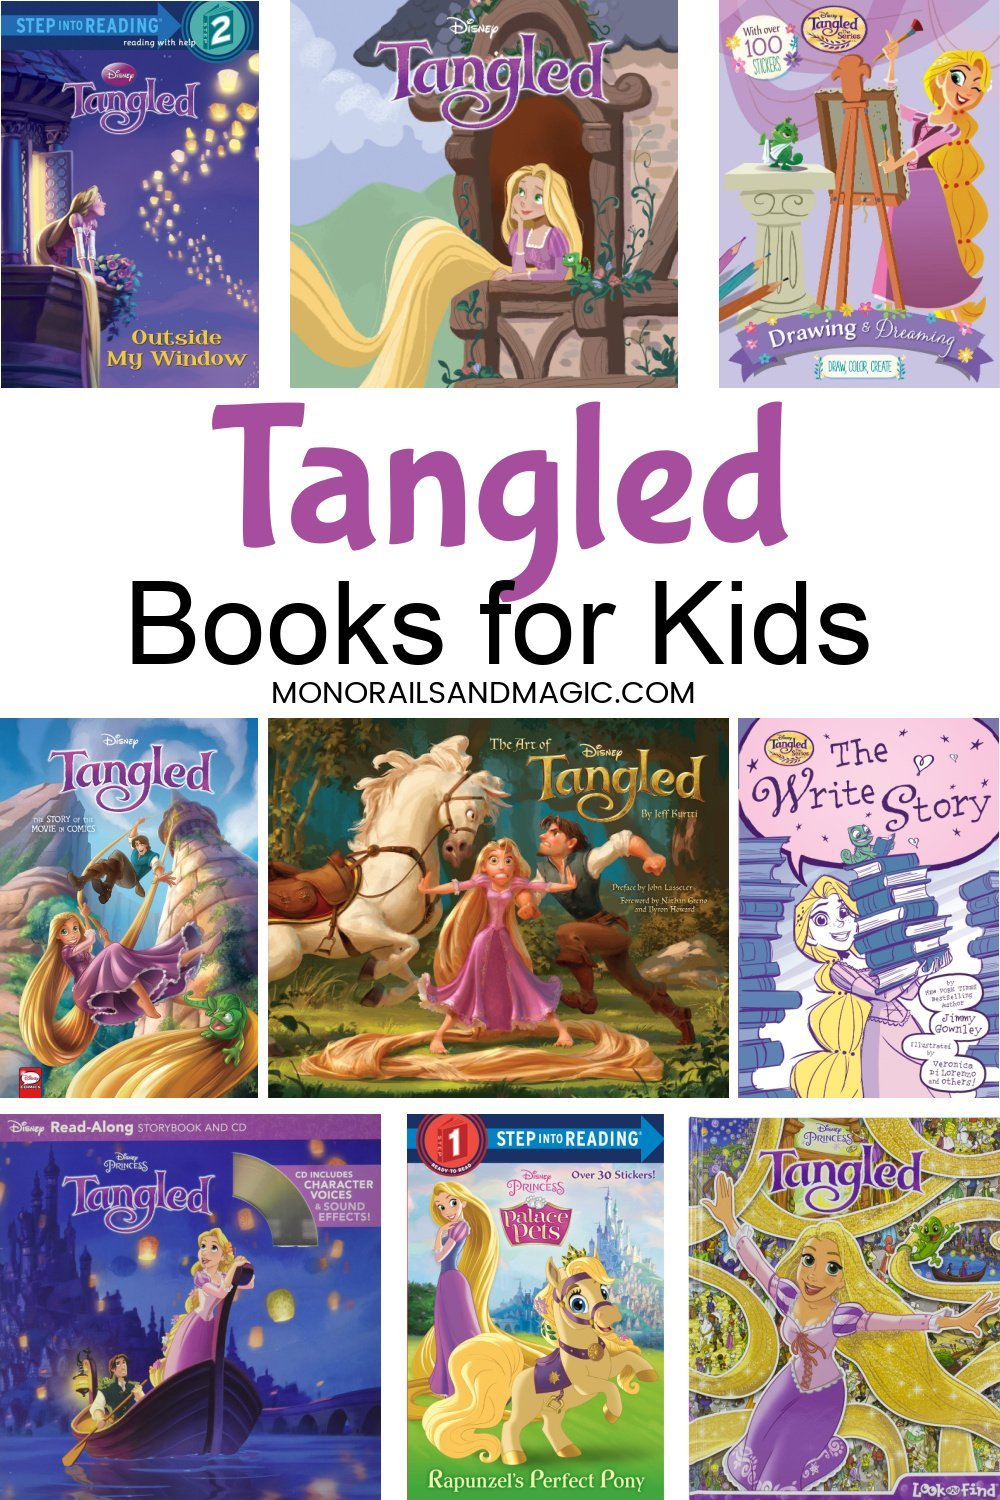 Disney Tangled books for kids of all ages.